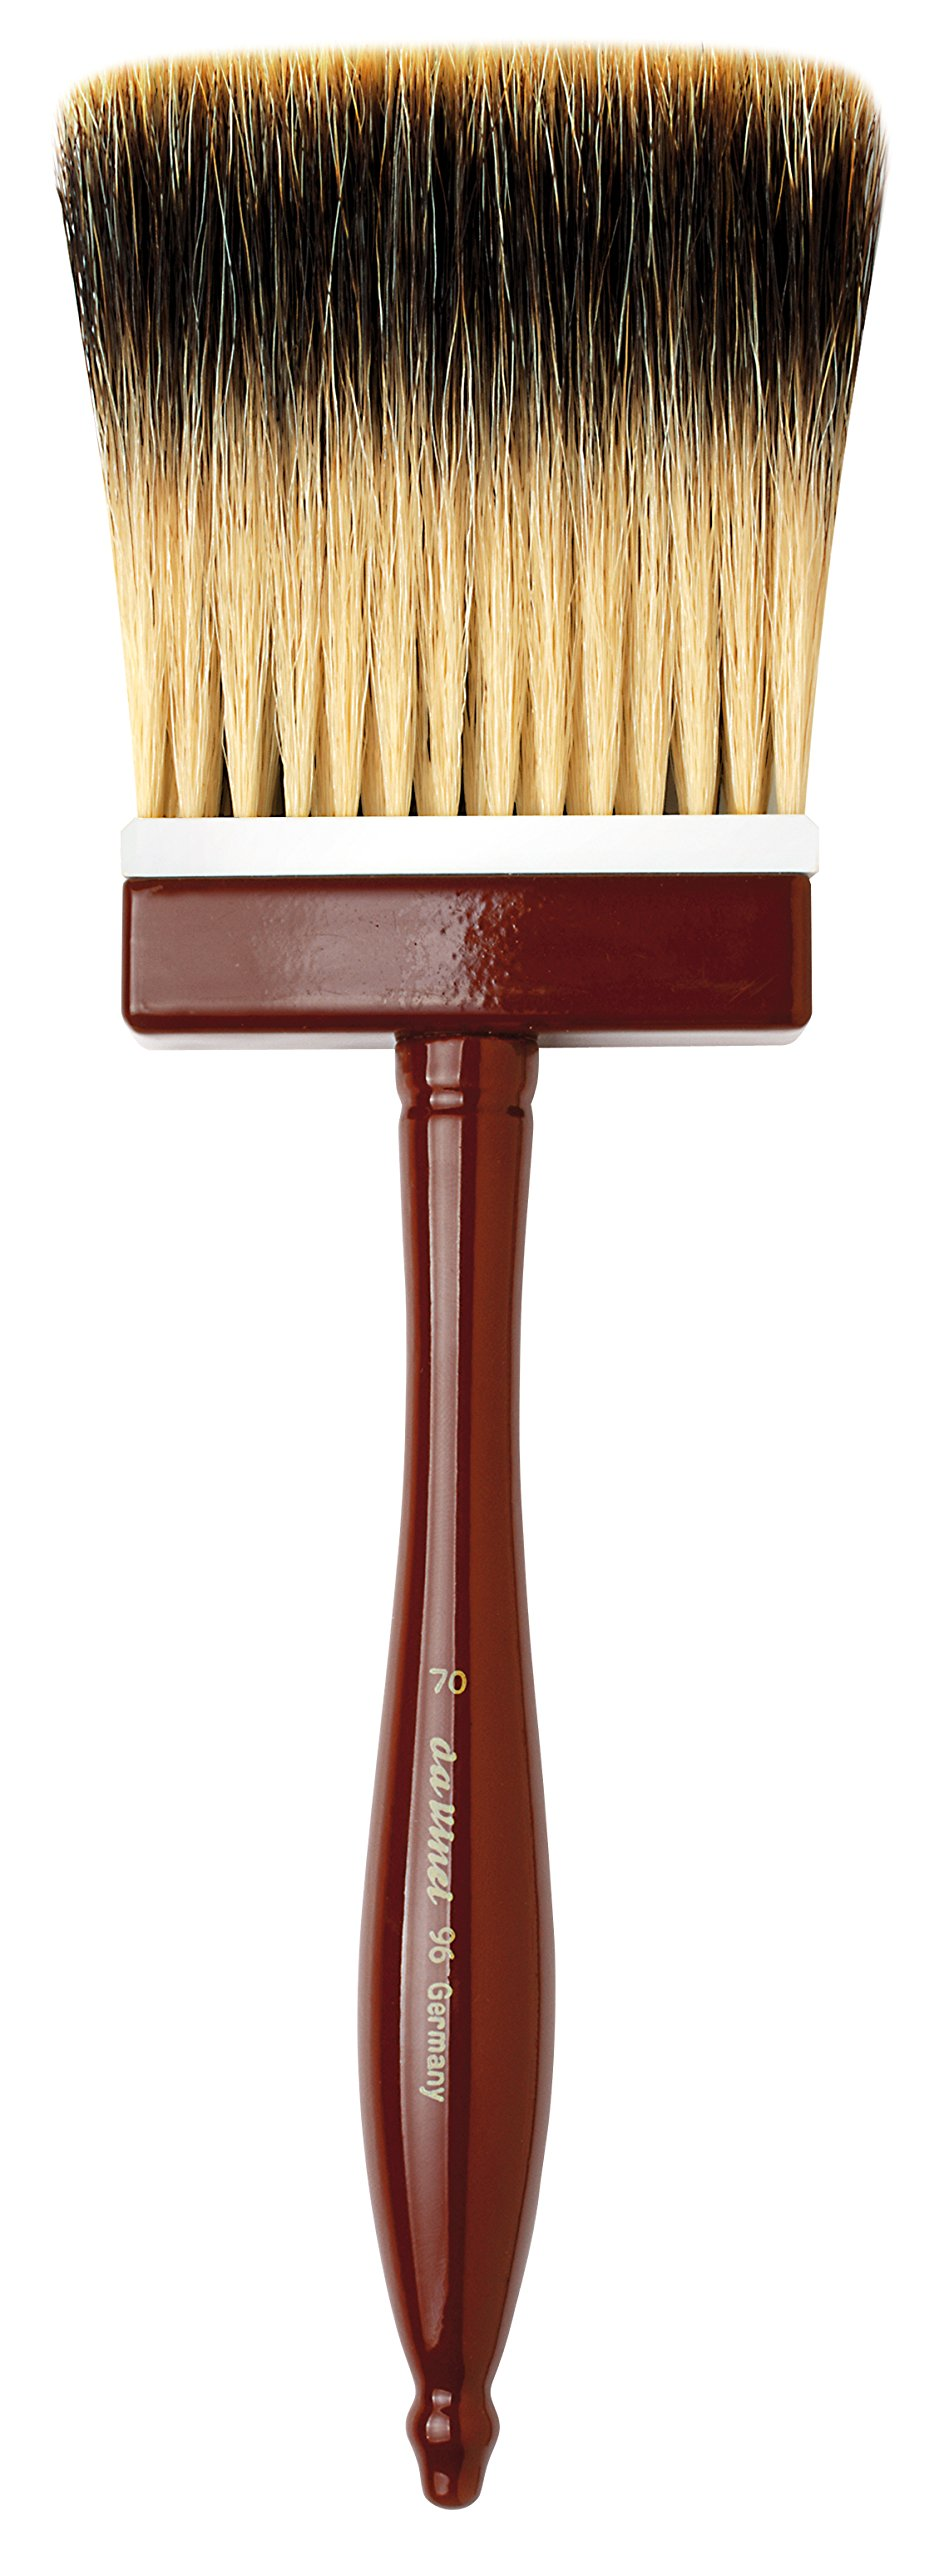 da Vinci Varnish & Priming Series 96 Softener Brush, 5-Row Thickness Pure Badger Hair with Wood Handle and Plastic Fastening, Size 70